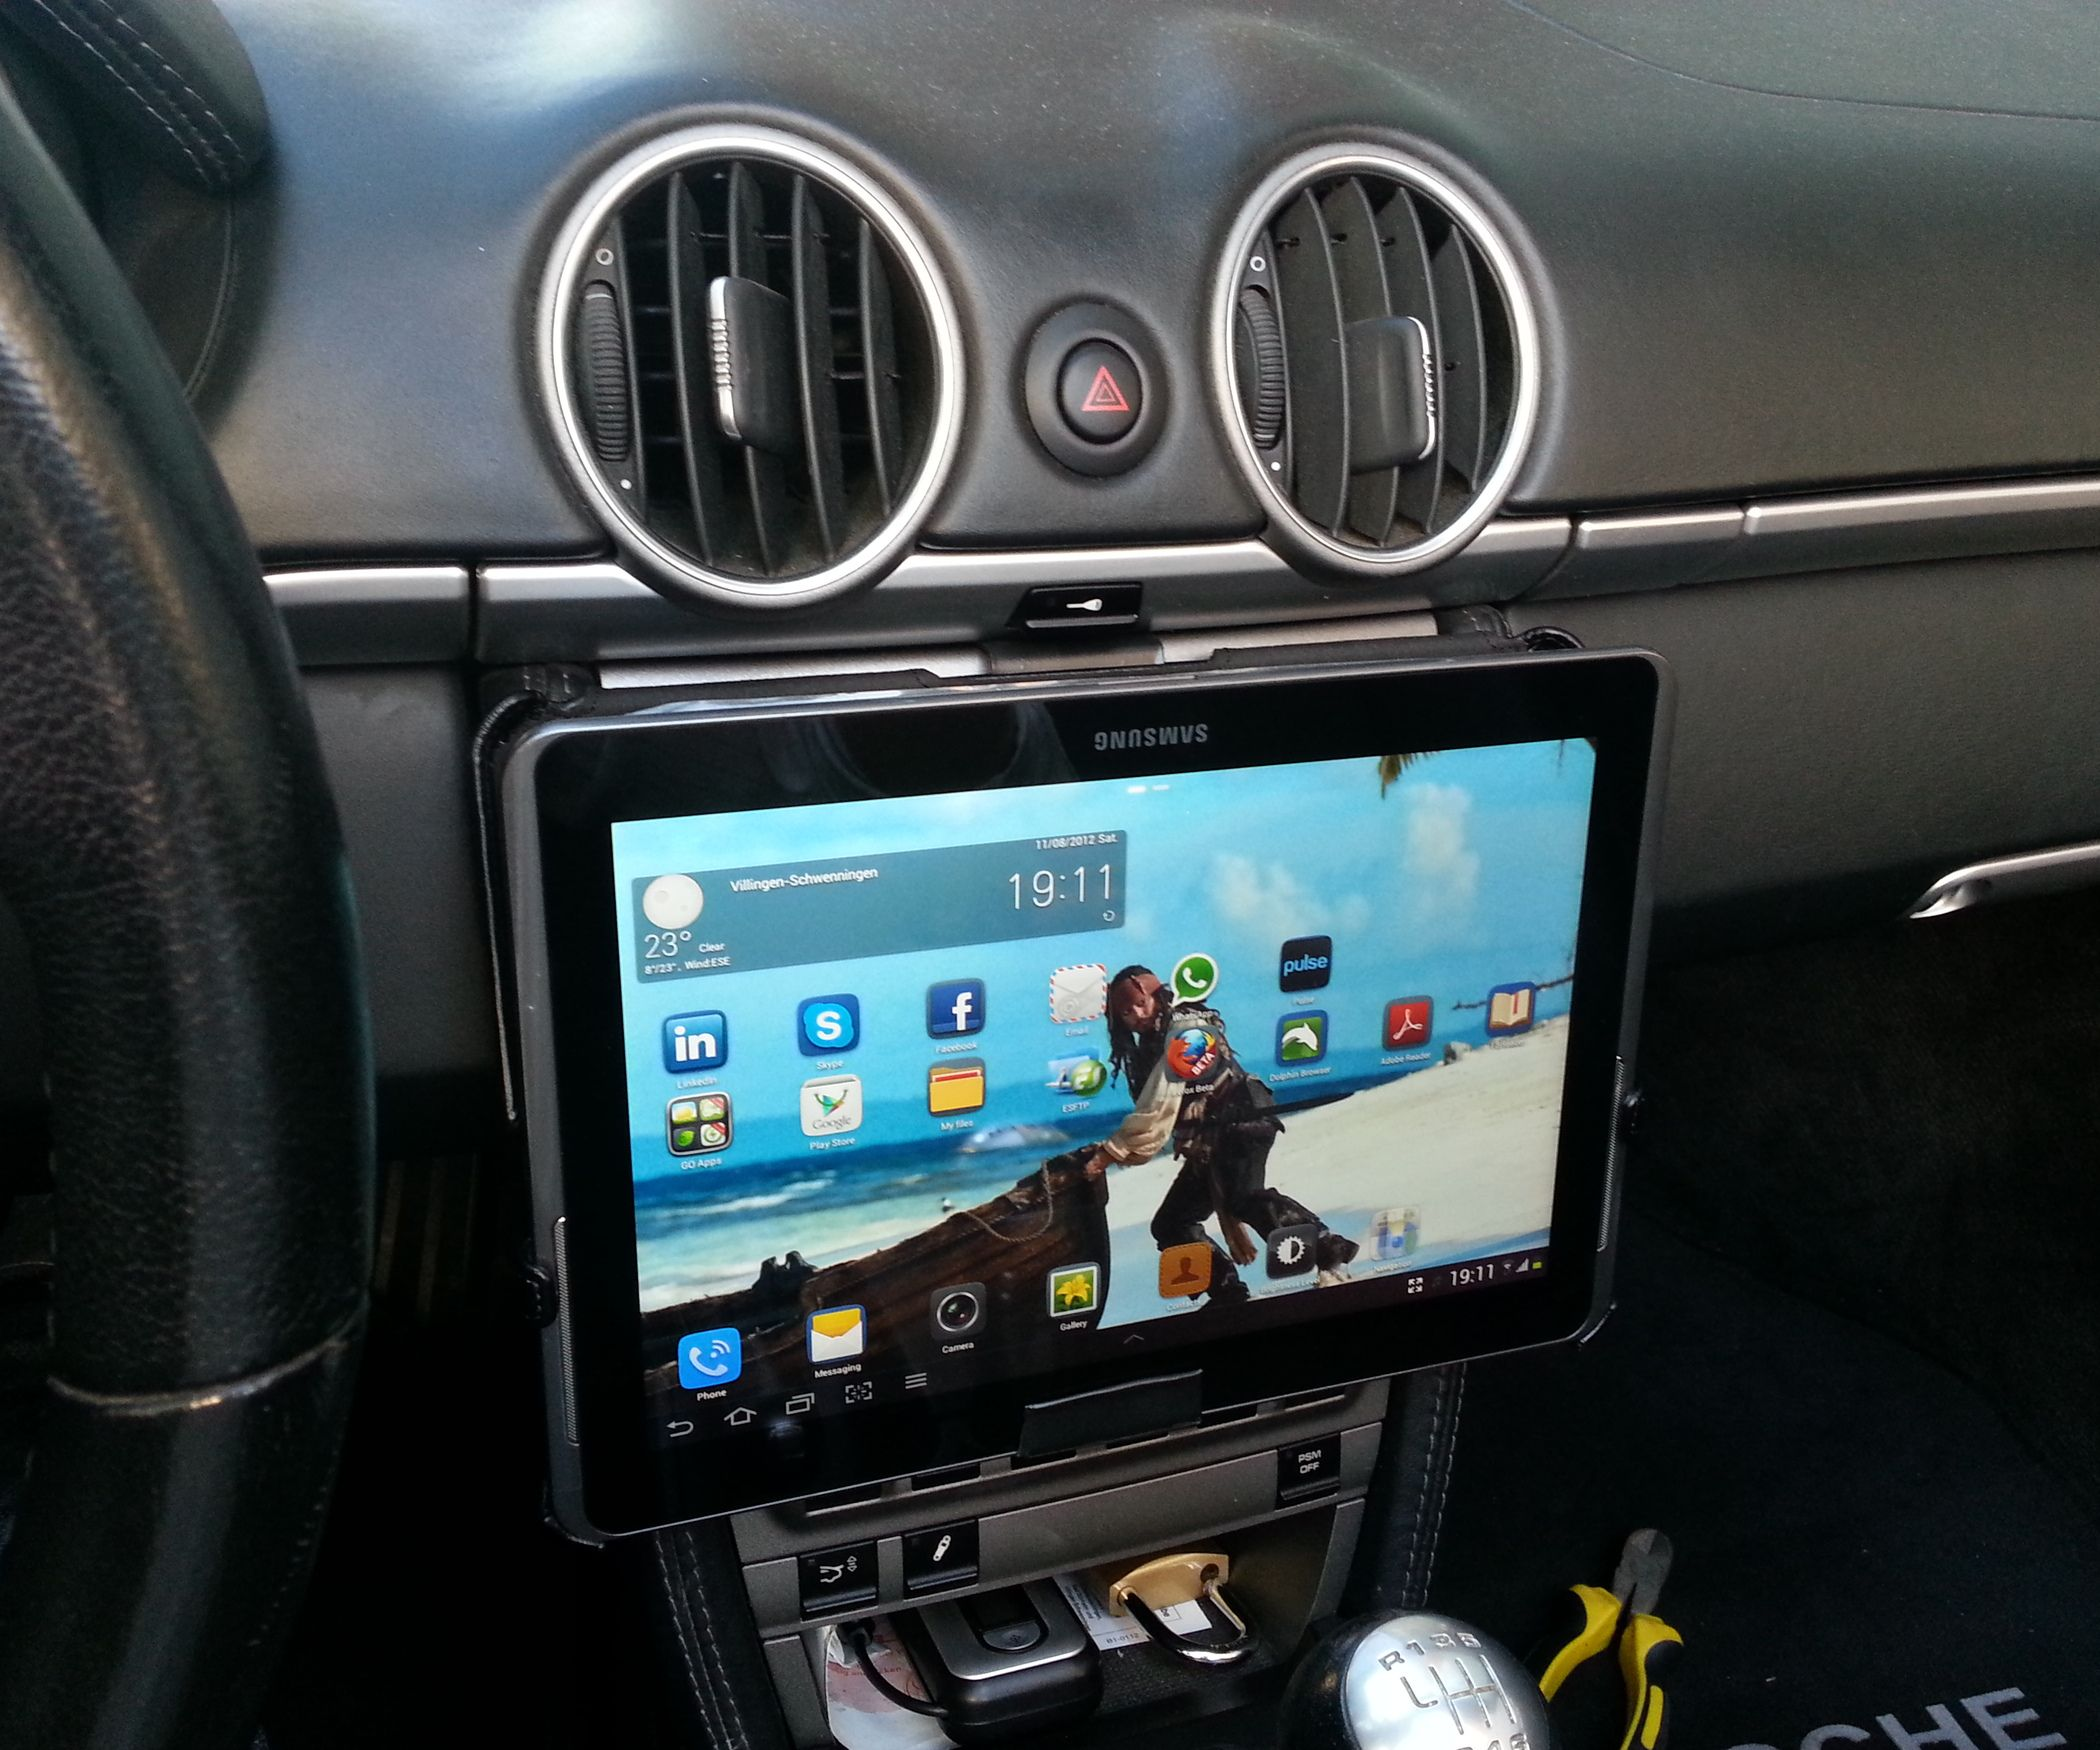 Tablet Ipad Removeable Car Mount For 1 In 5 Minutes Ipad Car